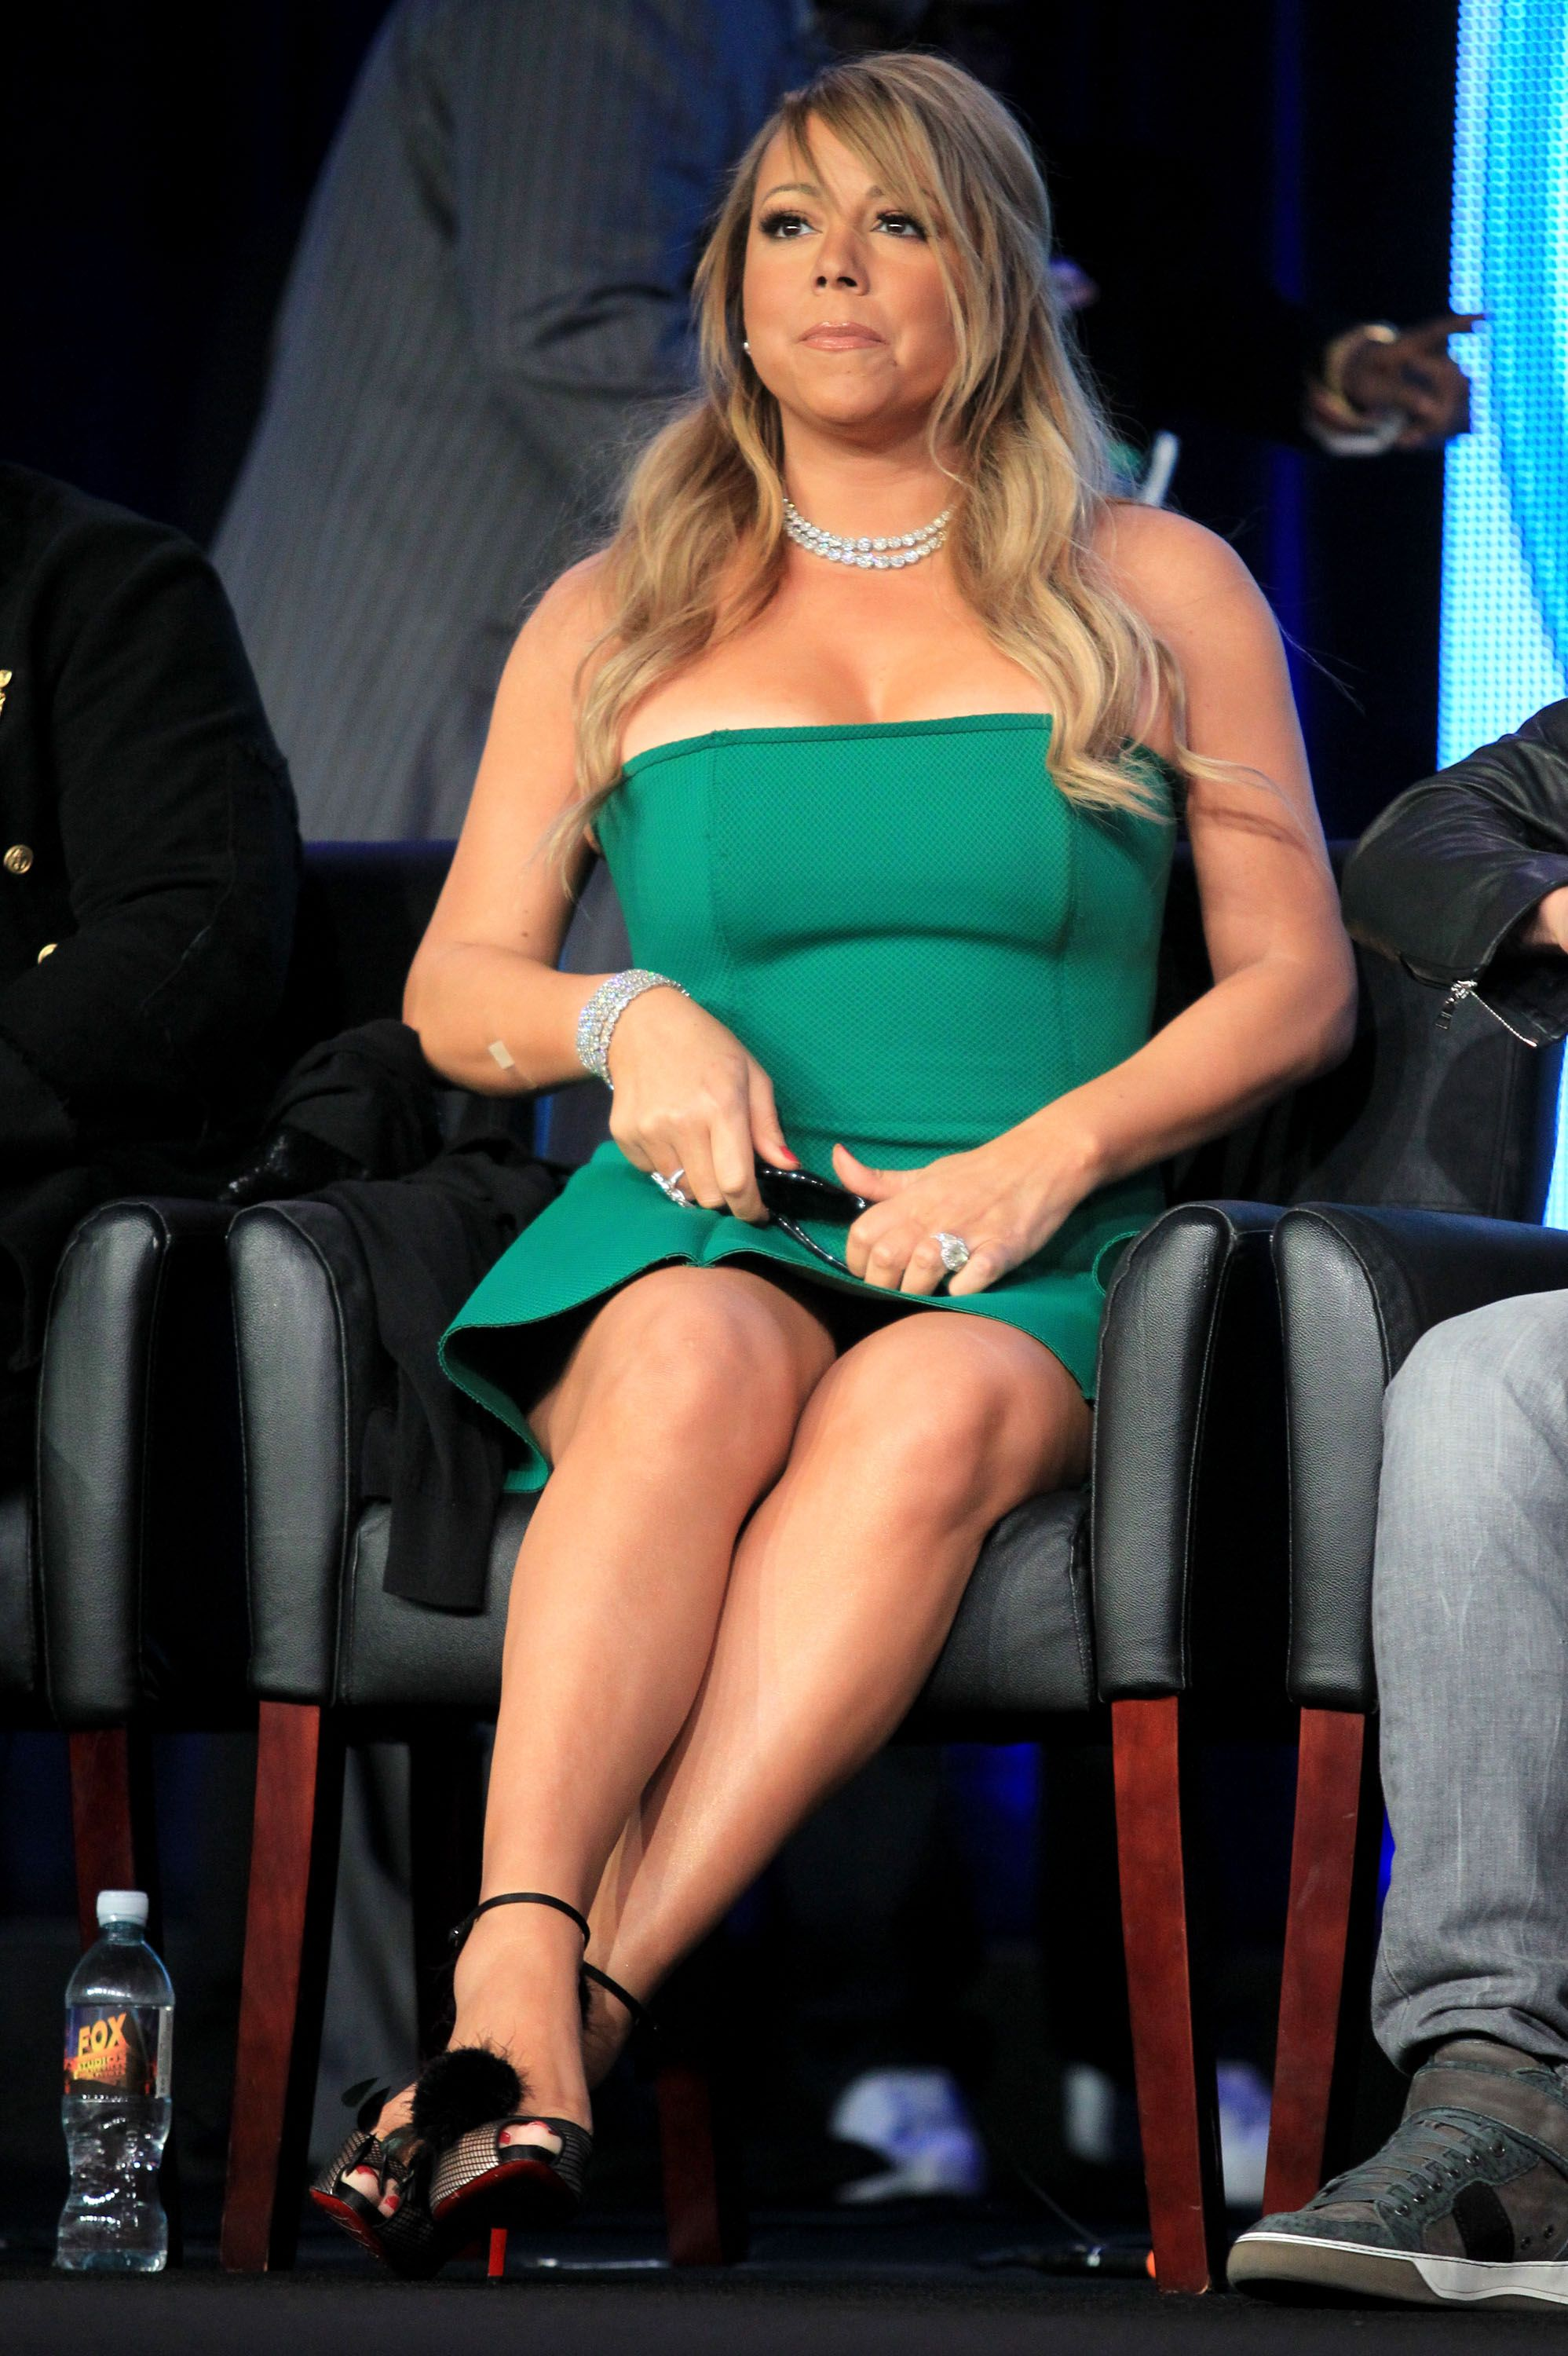 Mariah Carey during the FOX portion of the 2013 Winter TCA Tour at Langham Hotel on January 8, 2013 in Pasadena, California. | Source: Getty Images